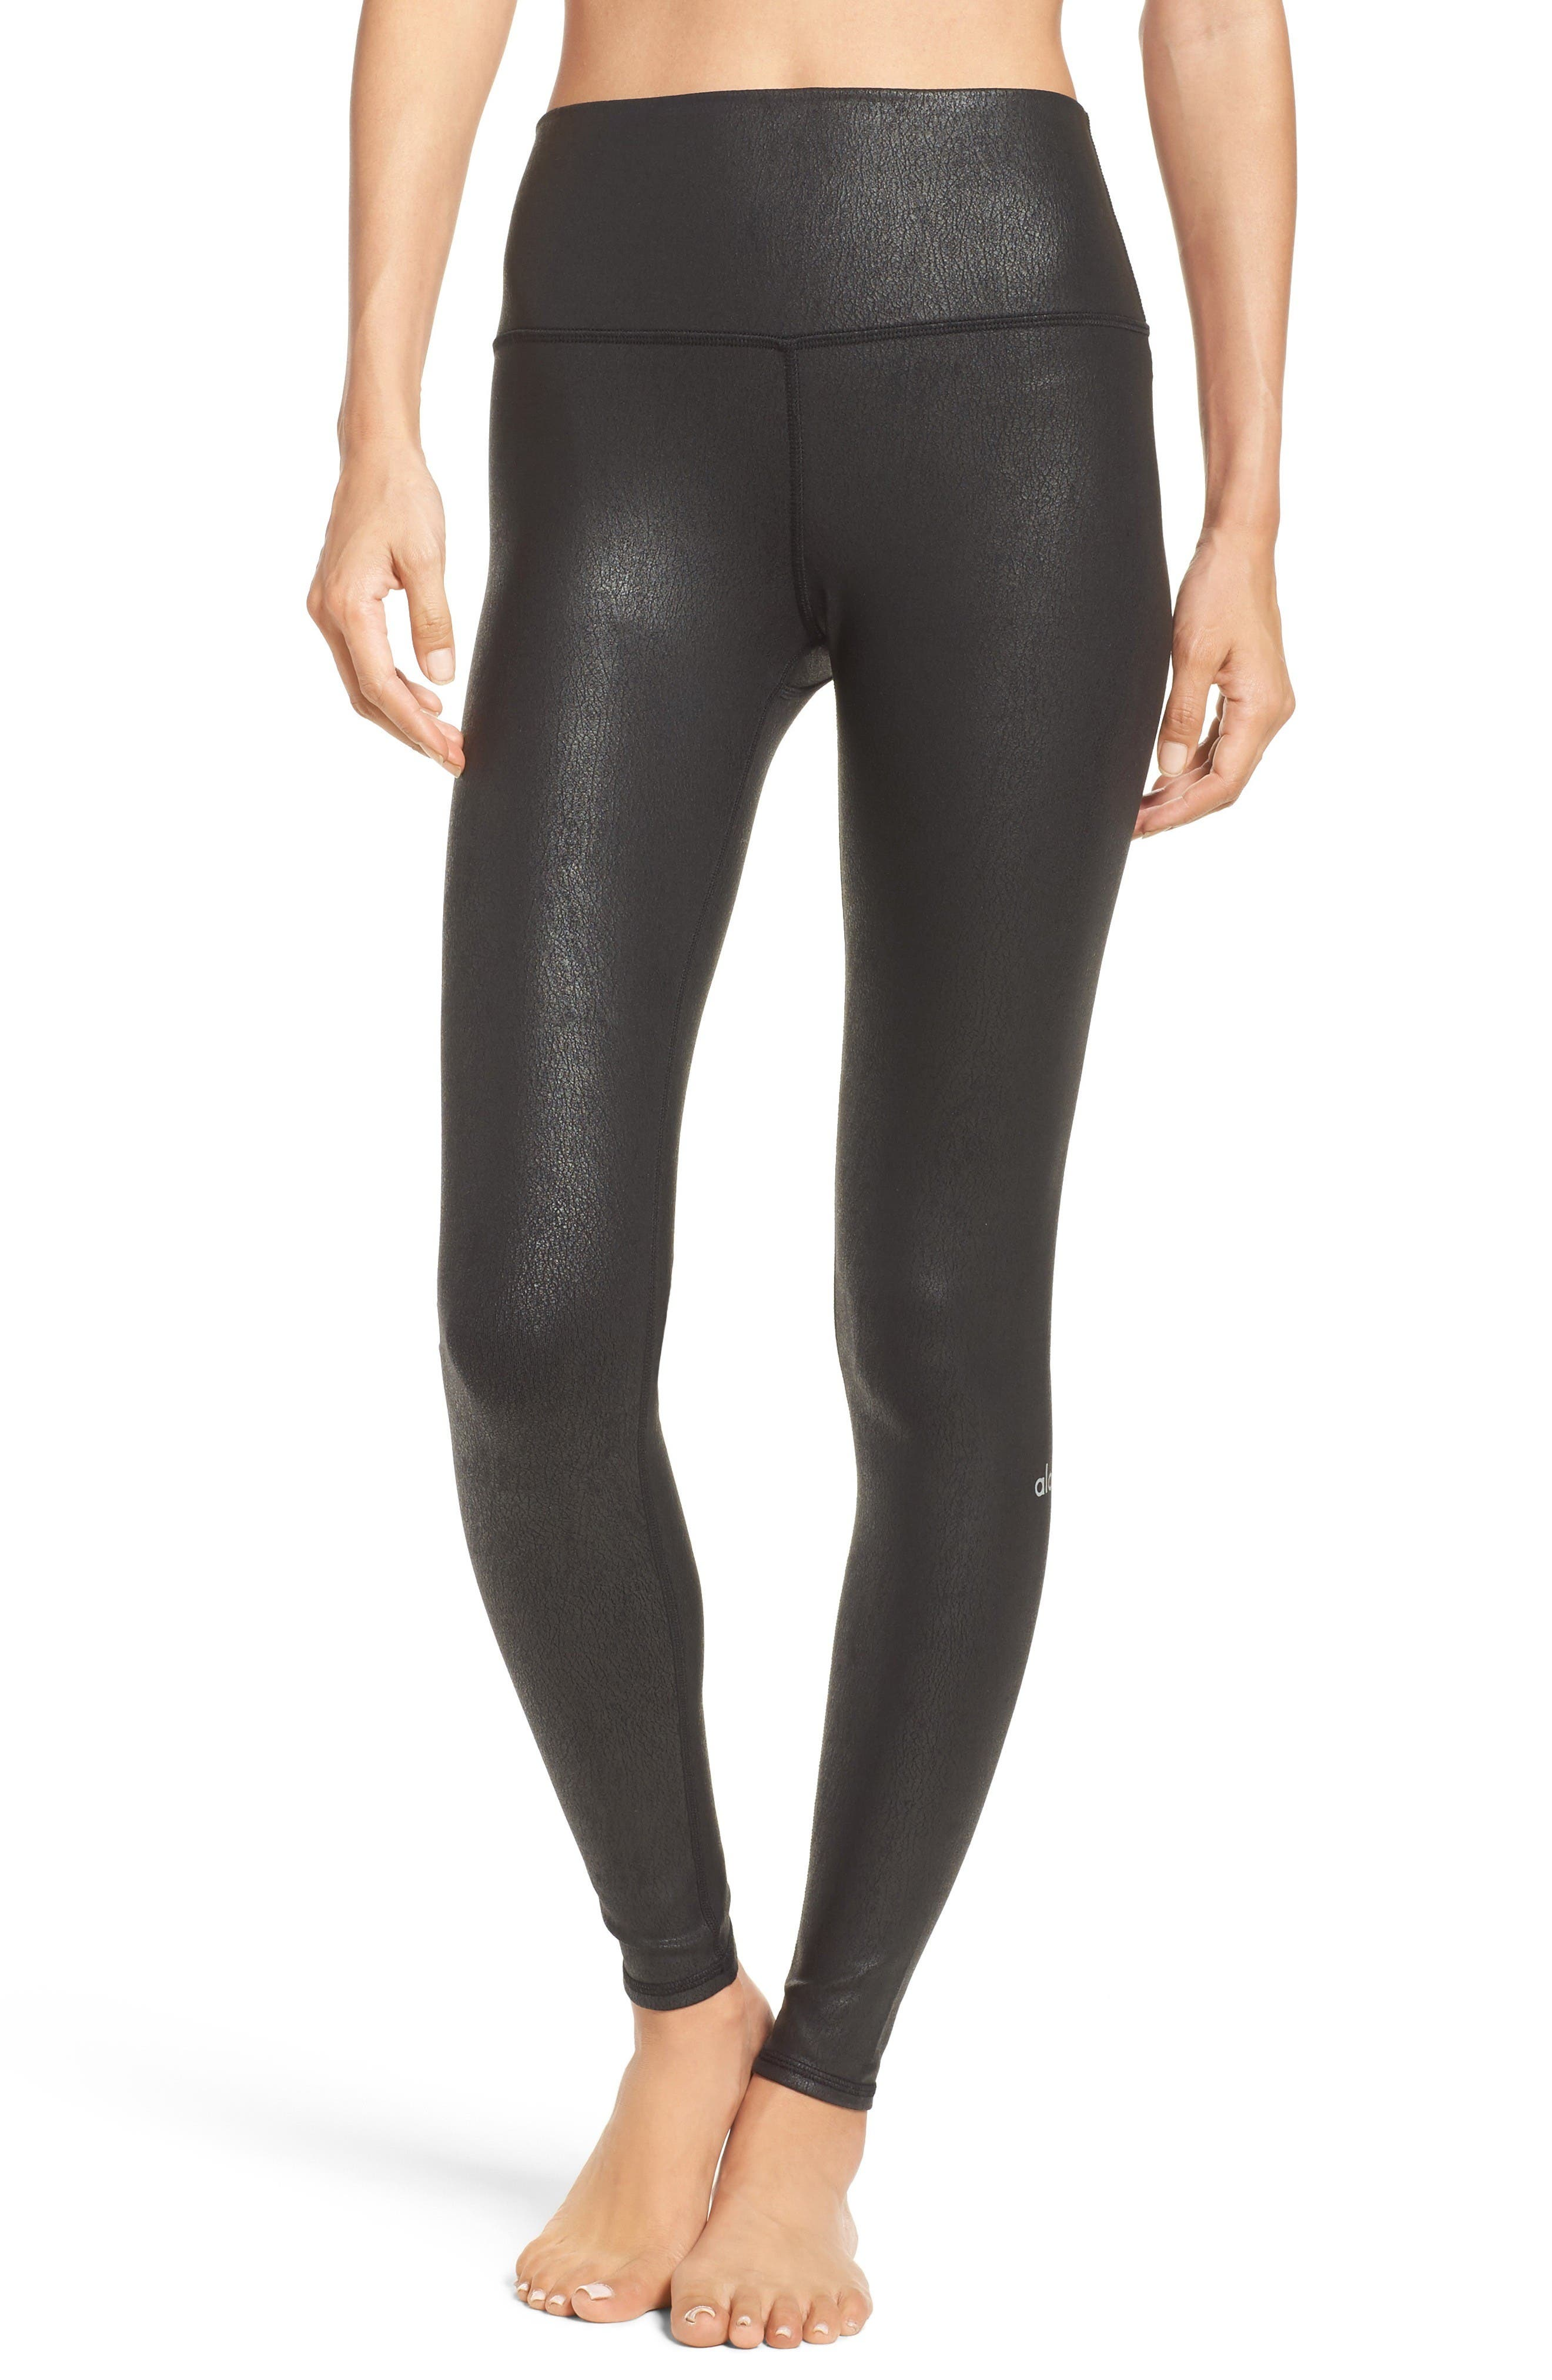 Airbrush High Waist Leggings,                         Main,                         color, Black Performance Leather